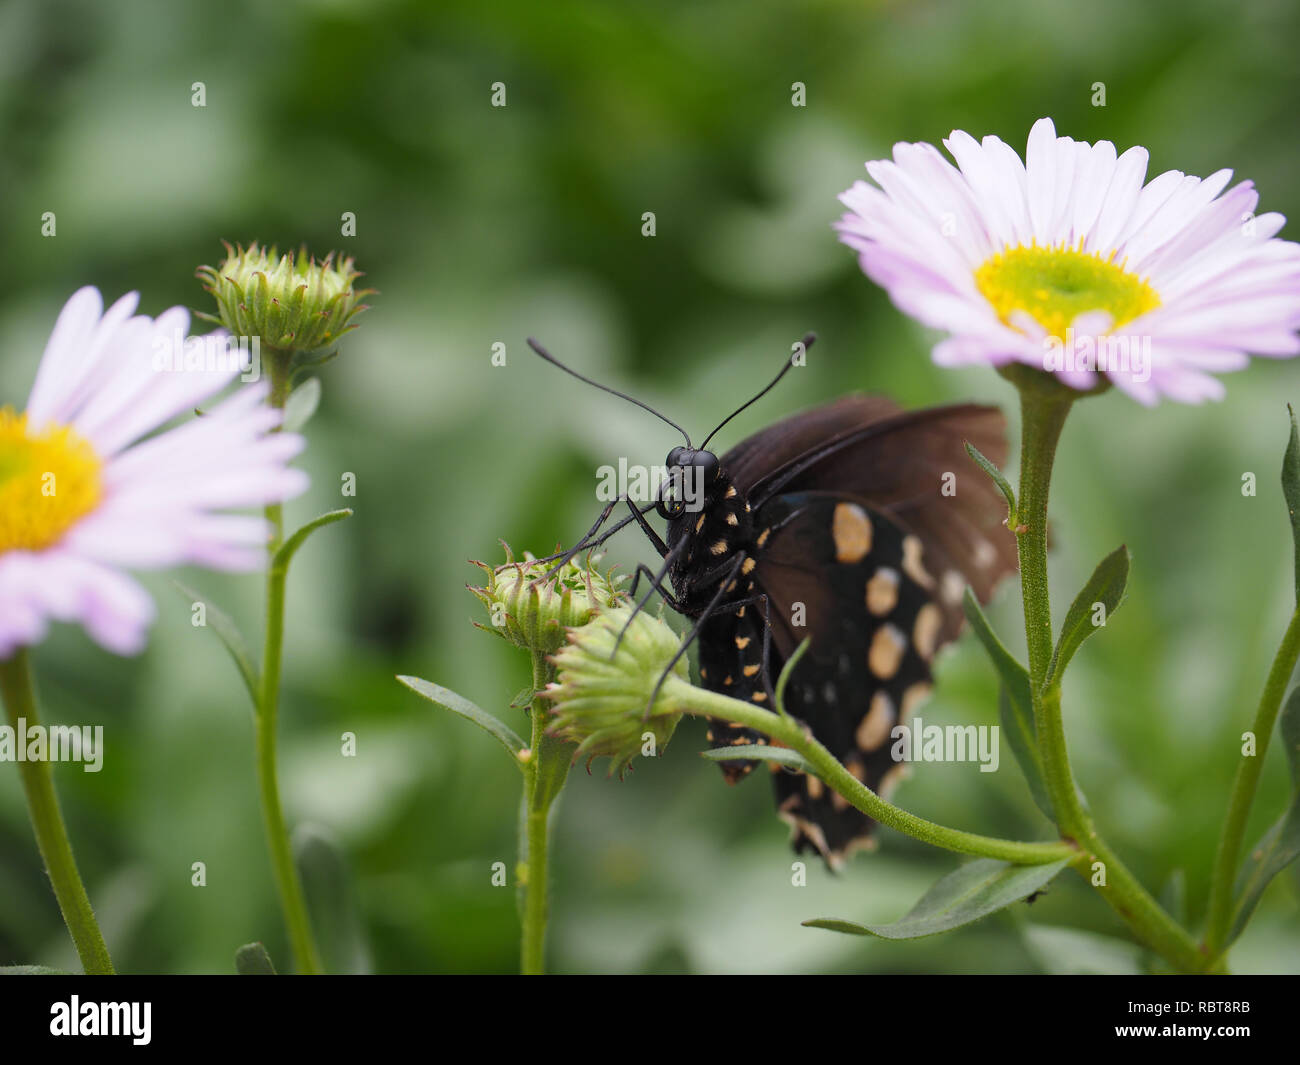 Pretty Black Butterfly on Daisy from the Butterfly Pavilion at Natural History Museum in Los Angeles, CA - Stock Image